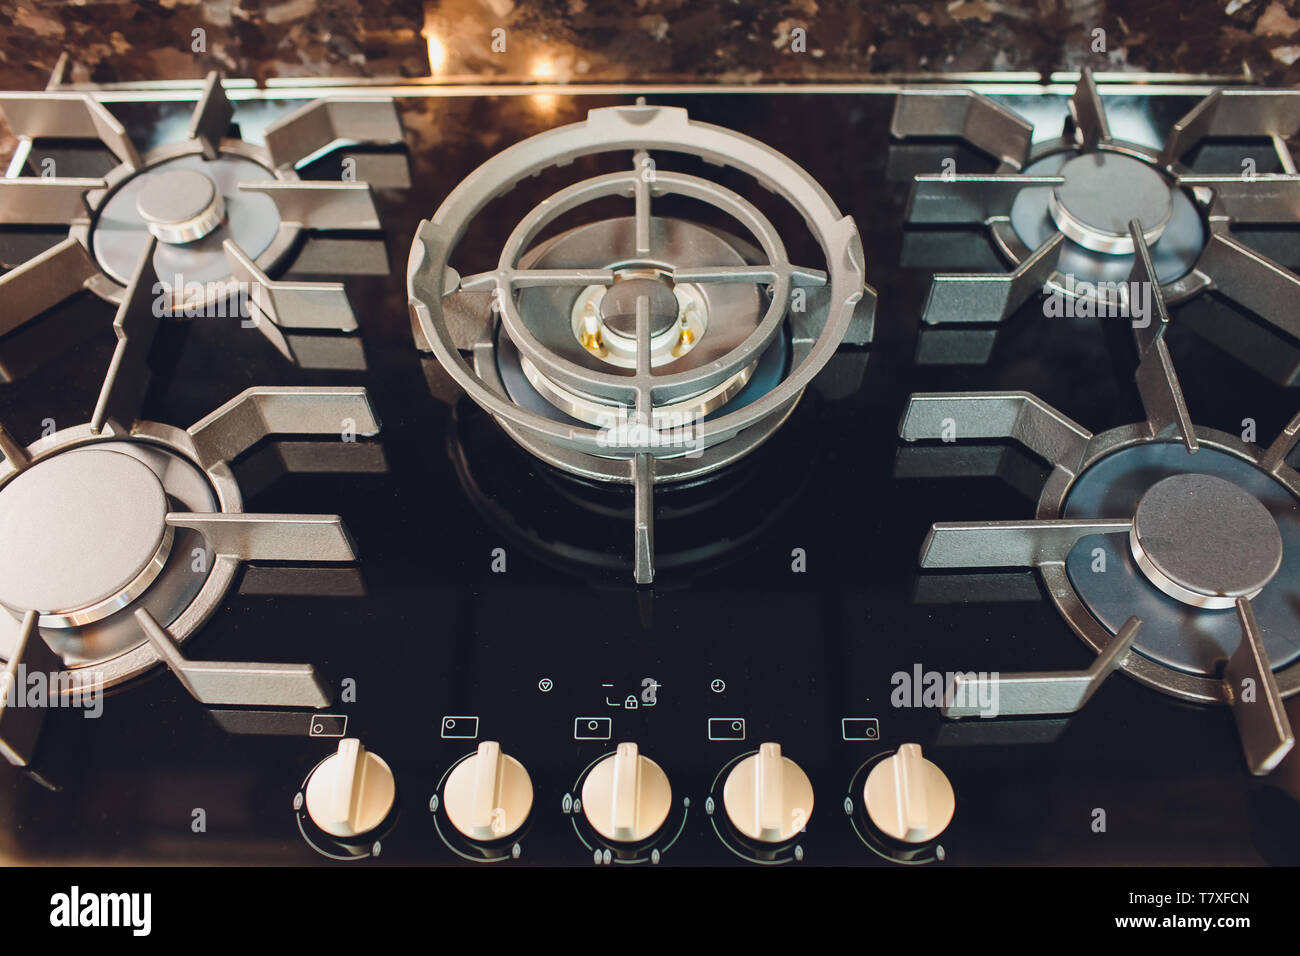 Cooking on a modern design gas stove burner - kitchen tools details - Stock Image